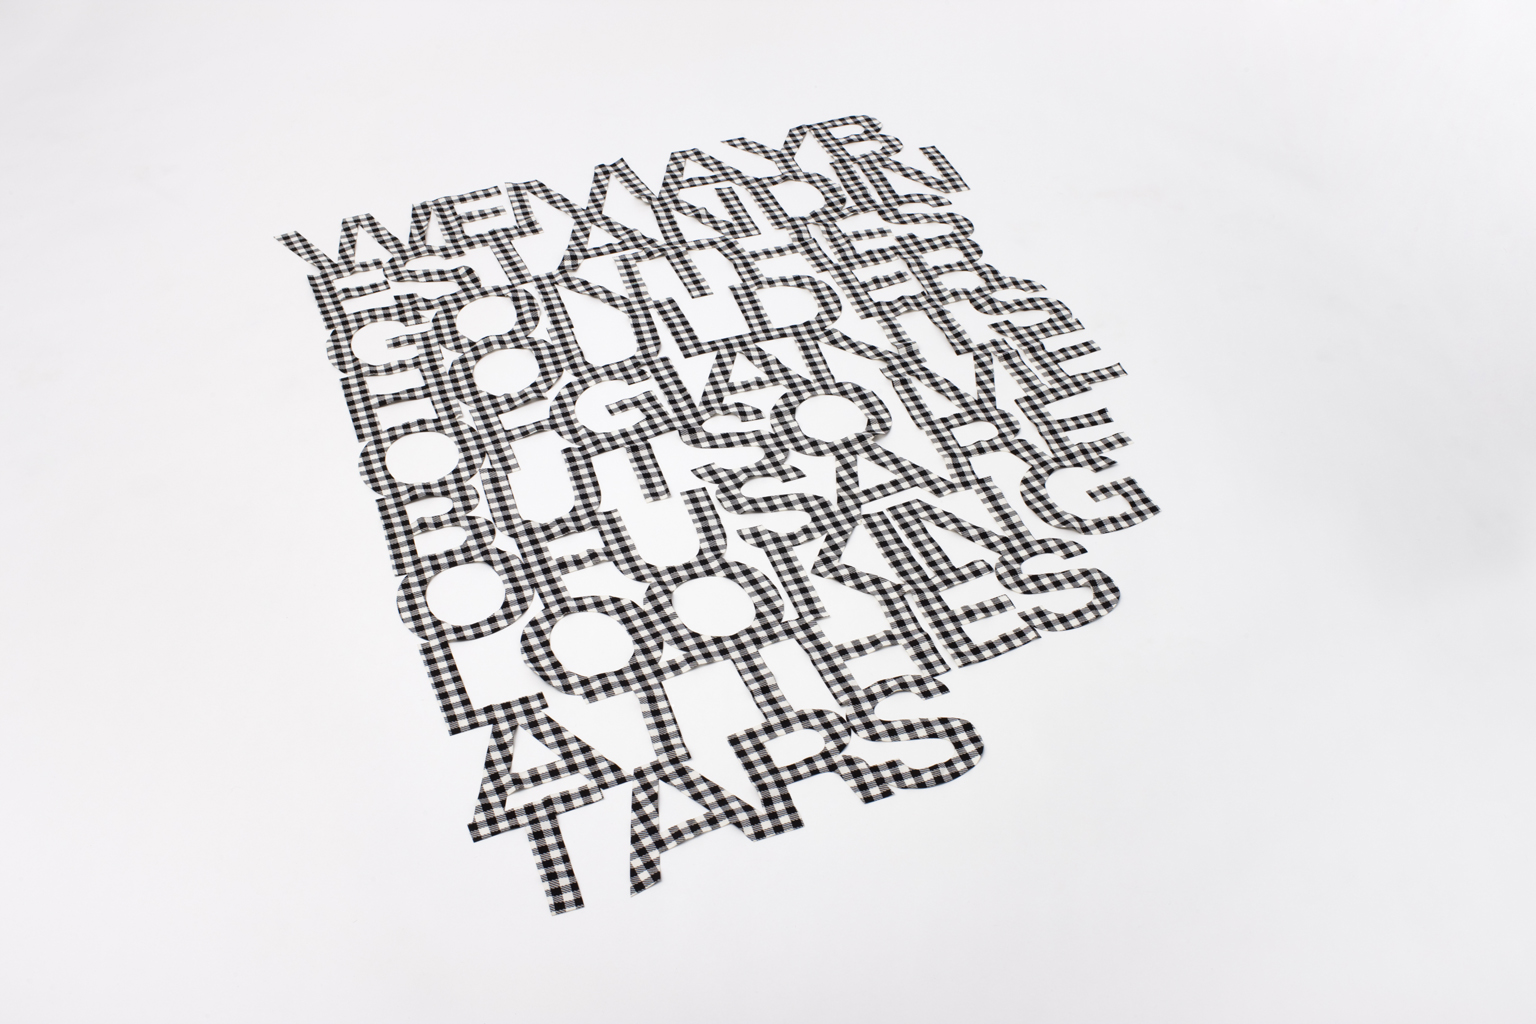 , 2007, Laser-cut fabric (black and white gingham), 140 x 112 cm, Edition of 3